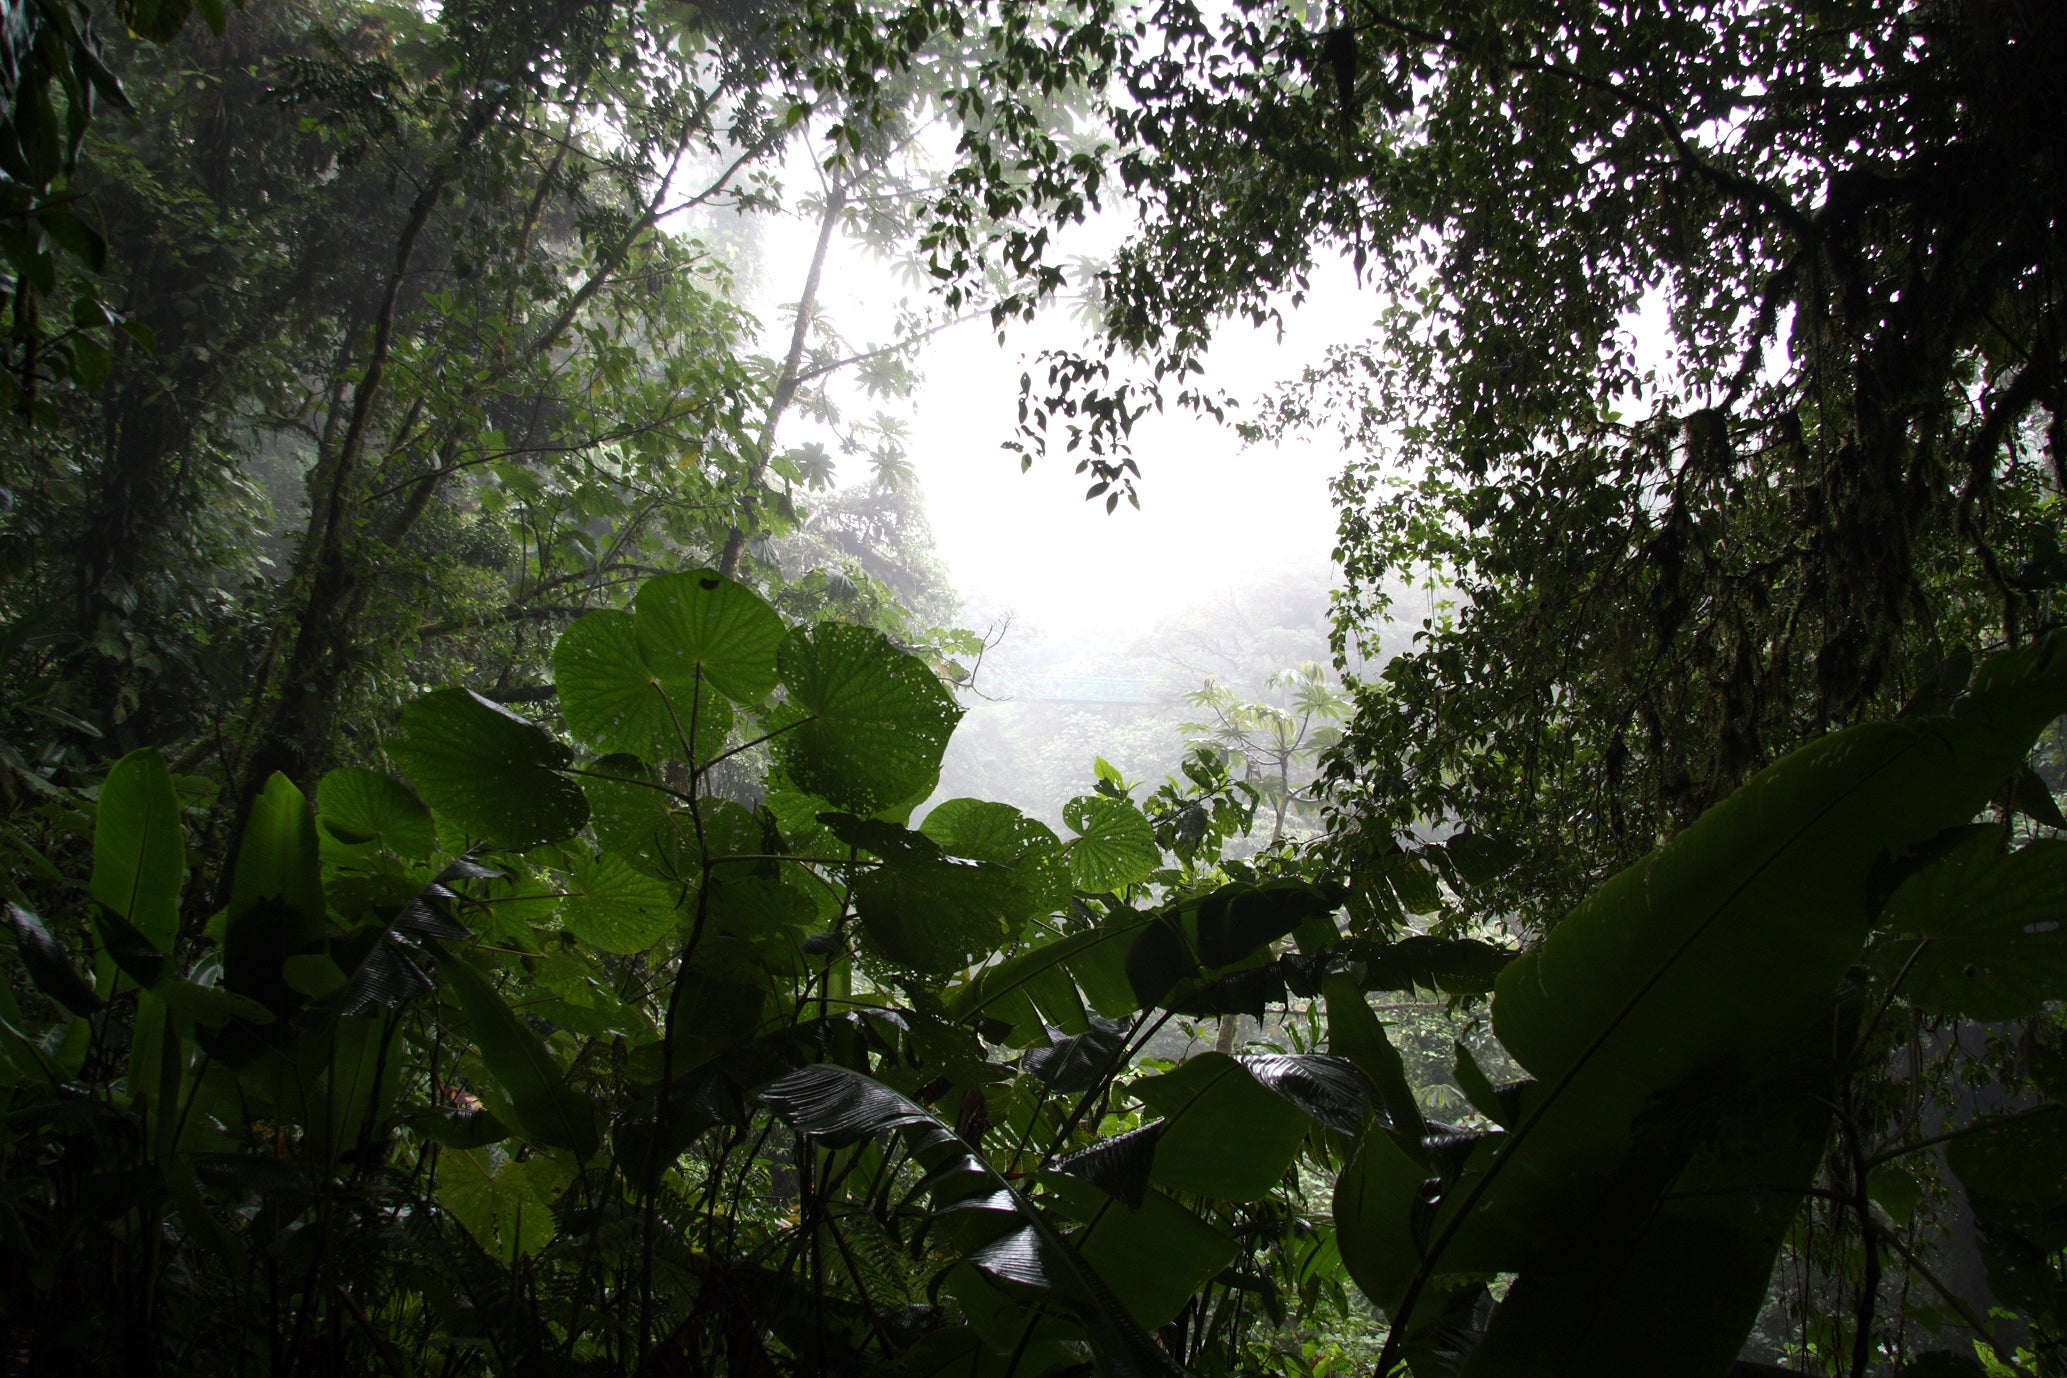 Tropical forests could soon lose their 'enchanted mist'